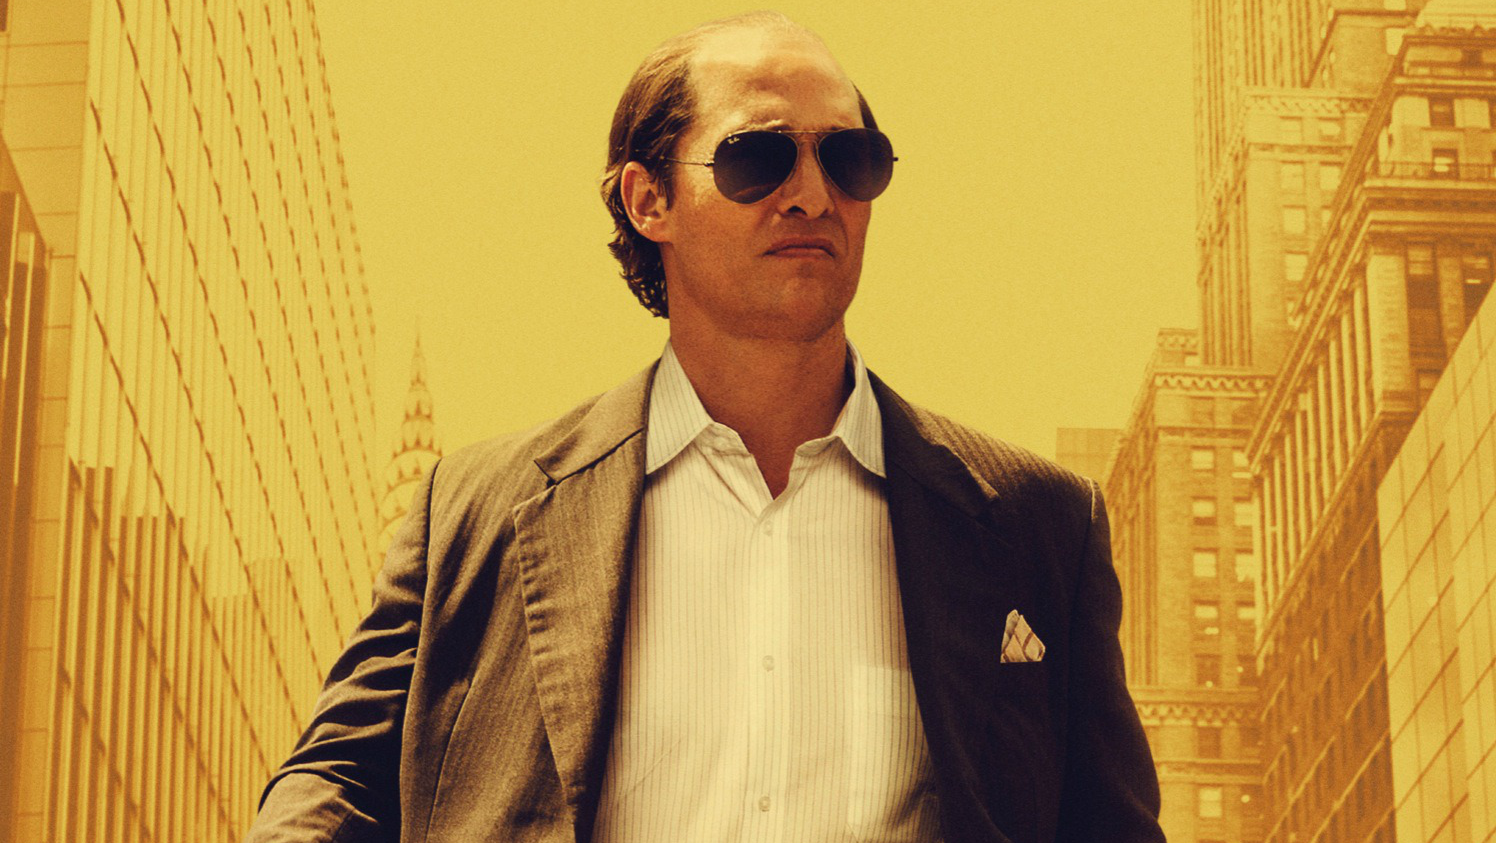 The movie poster for 'Gold' starring Matthew McConaughey